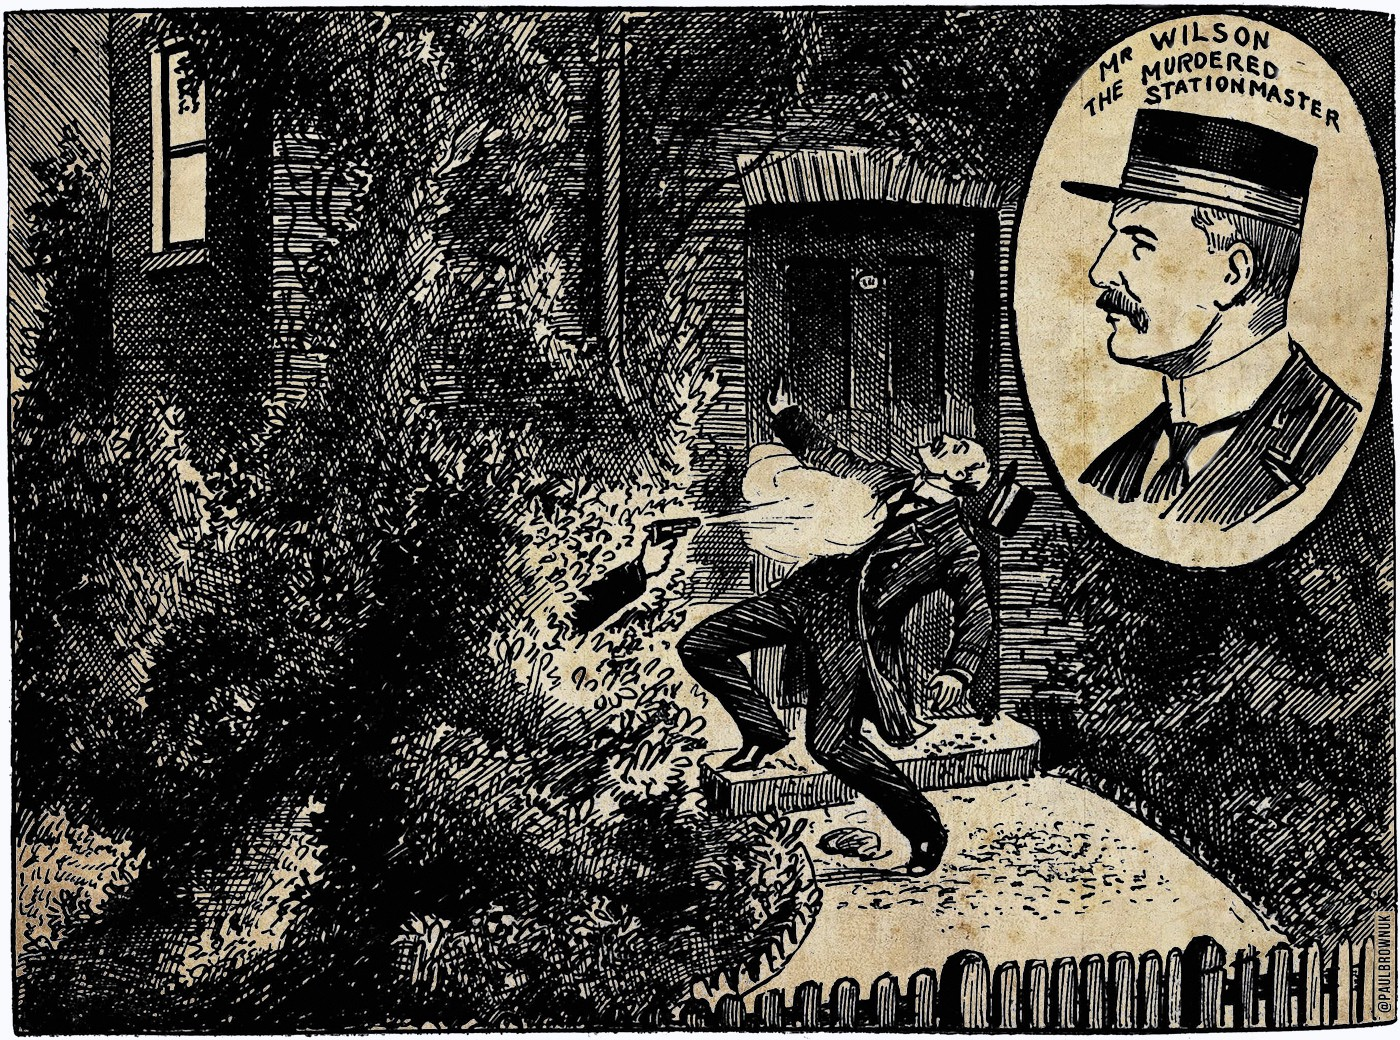 Stationmaster Shot Dead By Mysterious Assassin, Illustrated Police News, 1911 / Paul Brown